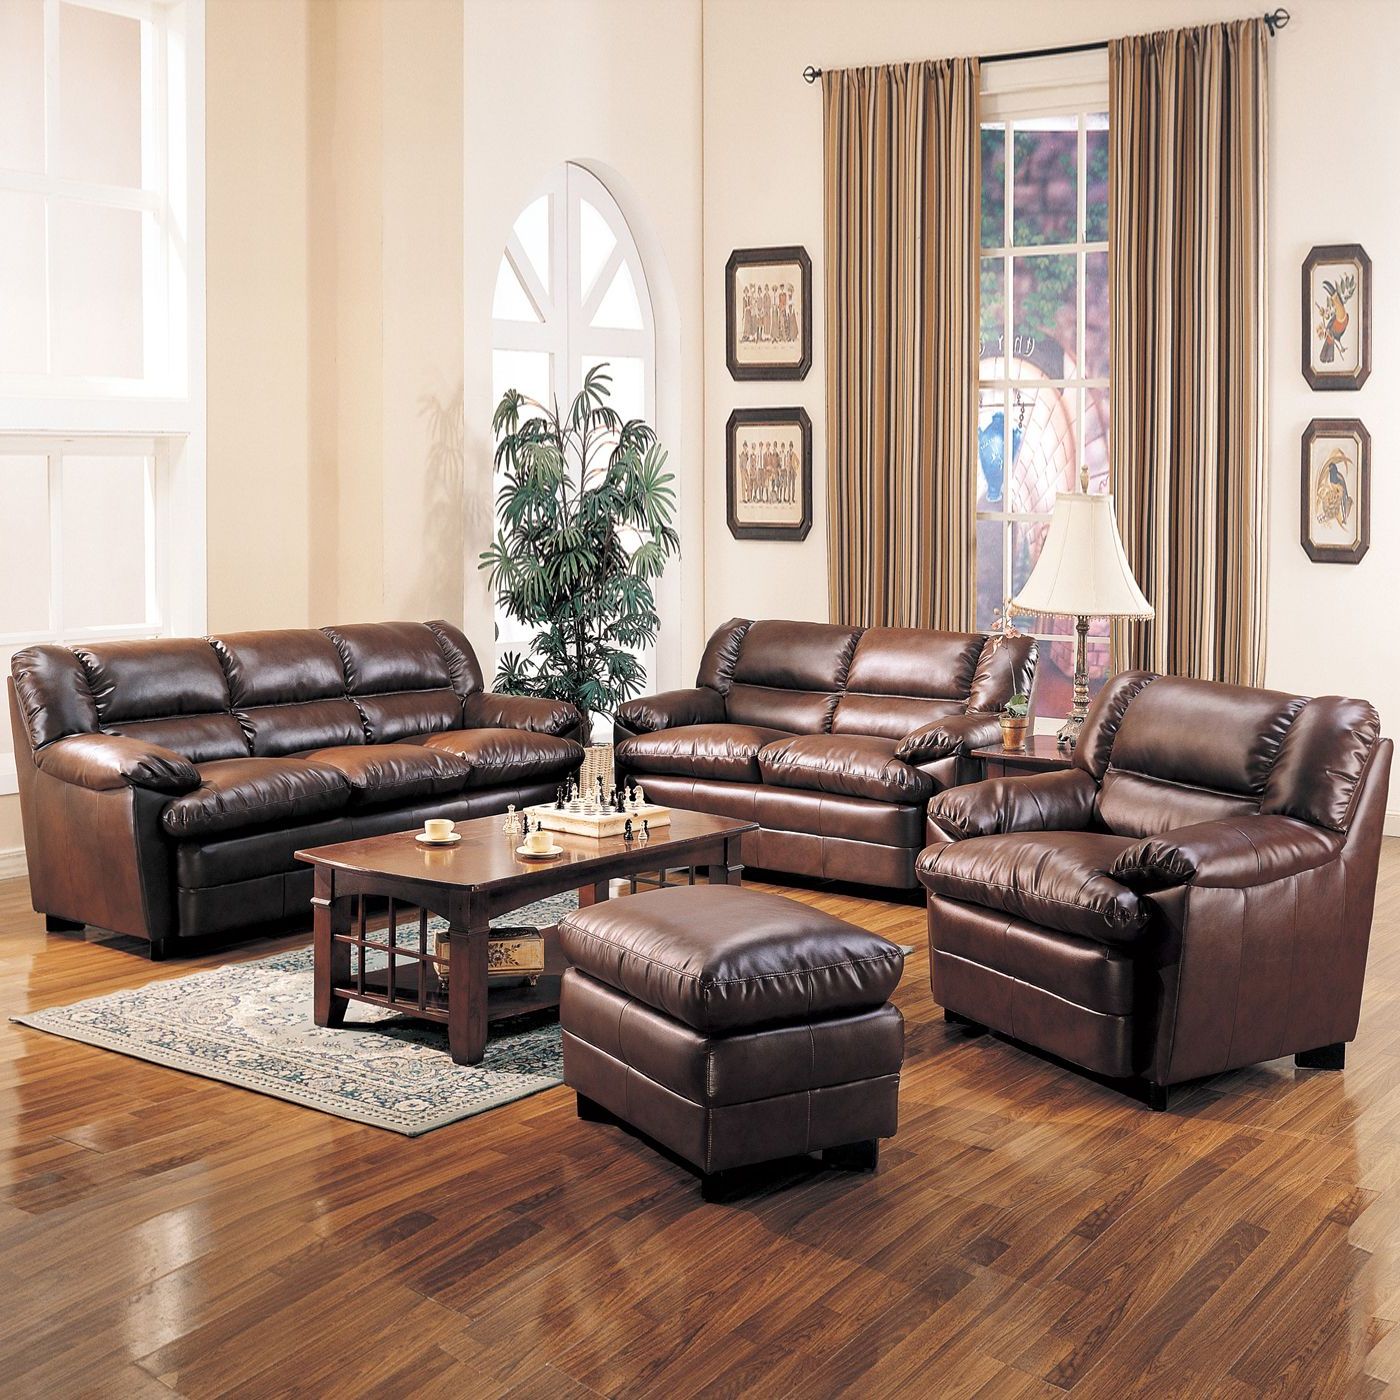 Preferred Declan 3 Piece Power Reclining Sectionals With Left Facing Console Loveseat Intended For Cream Living Room Sets: Vintage Living Room Set Up With Dark Brown (View 18 of 20)